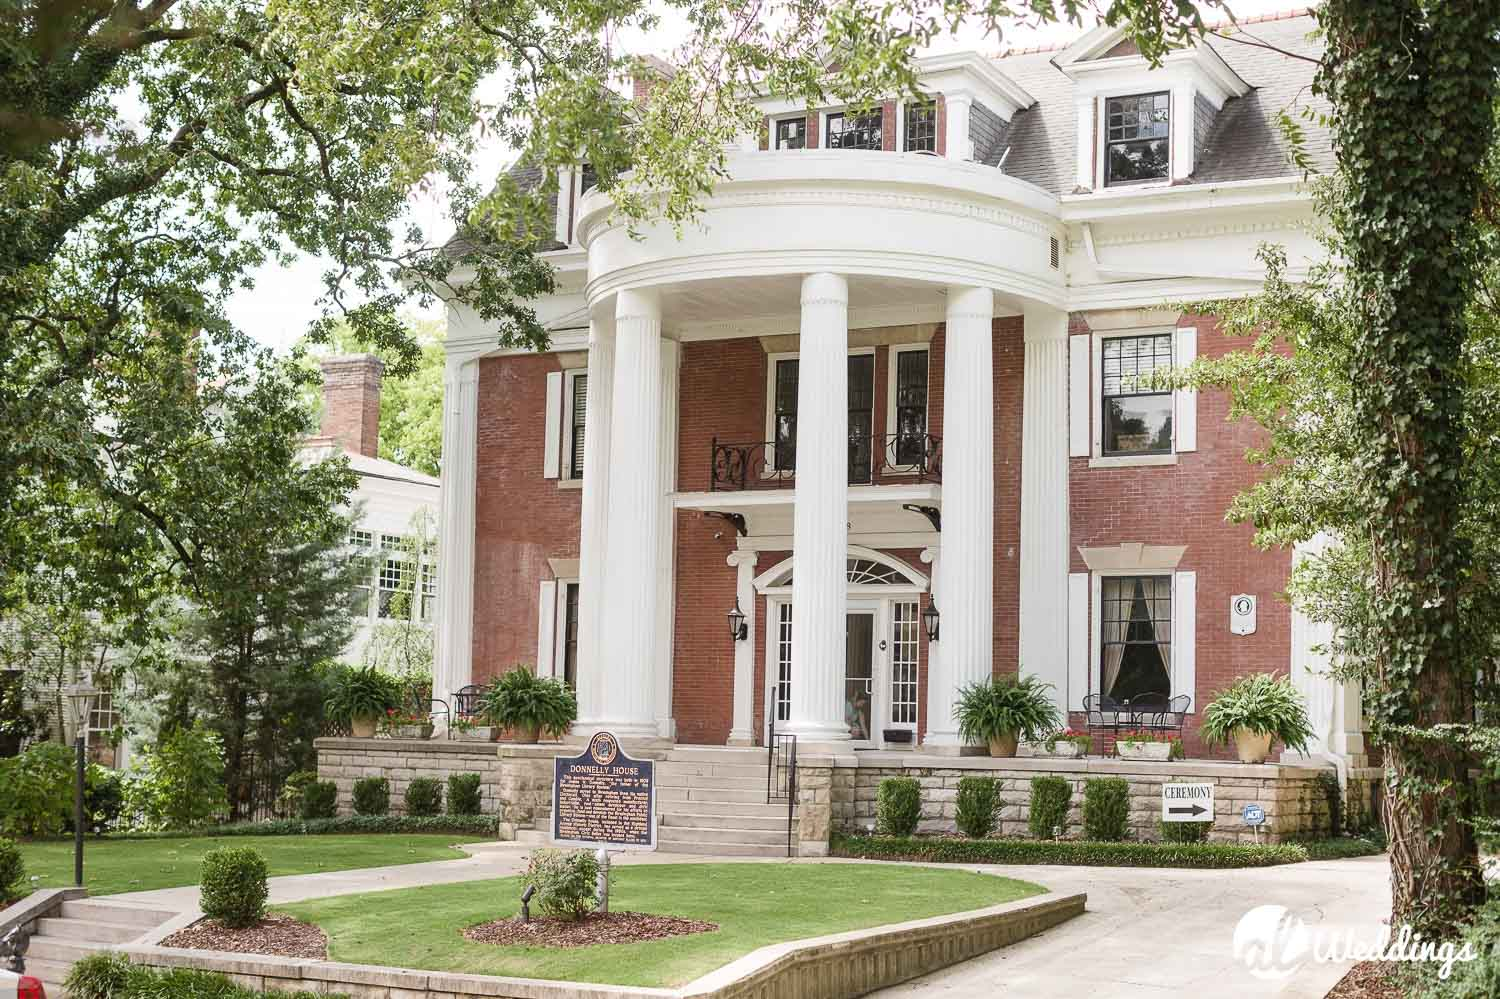 donnelly-house-wedding-downtown-birmingham-al-27